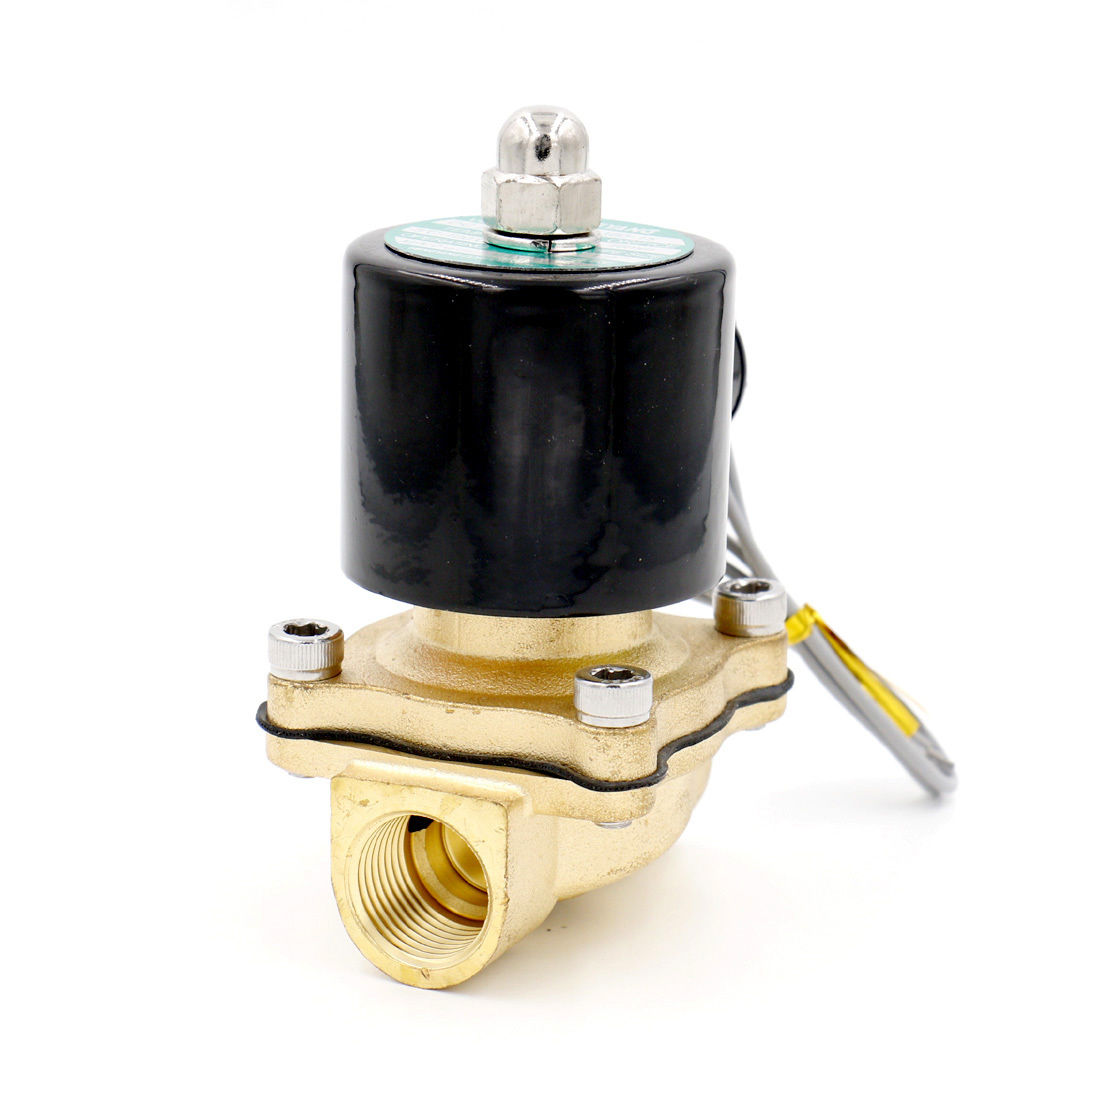 Brass Electric Solenoid Valve 2W-160-15 1/2 Inch NPT for Air Water Valve 12V NC 1 2 built side inlet floating ball valve automatic water level control valve for water tank f water tank water tower